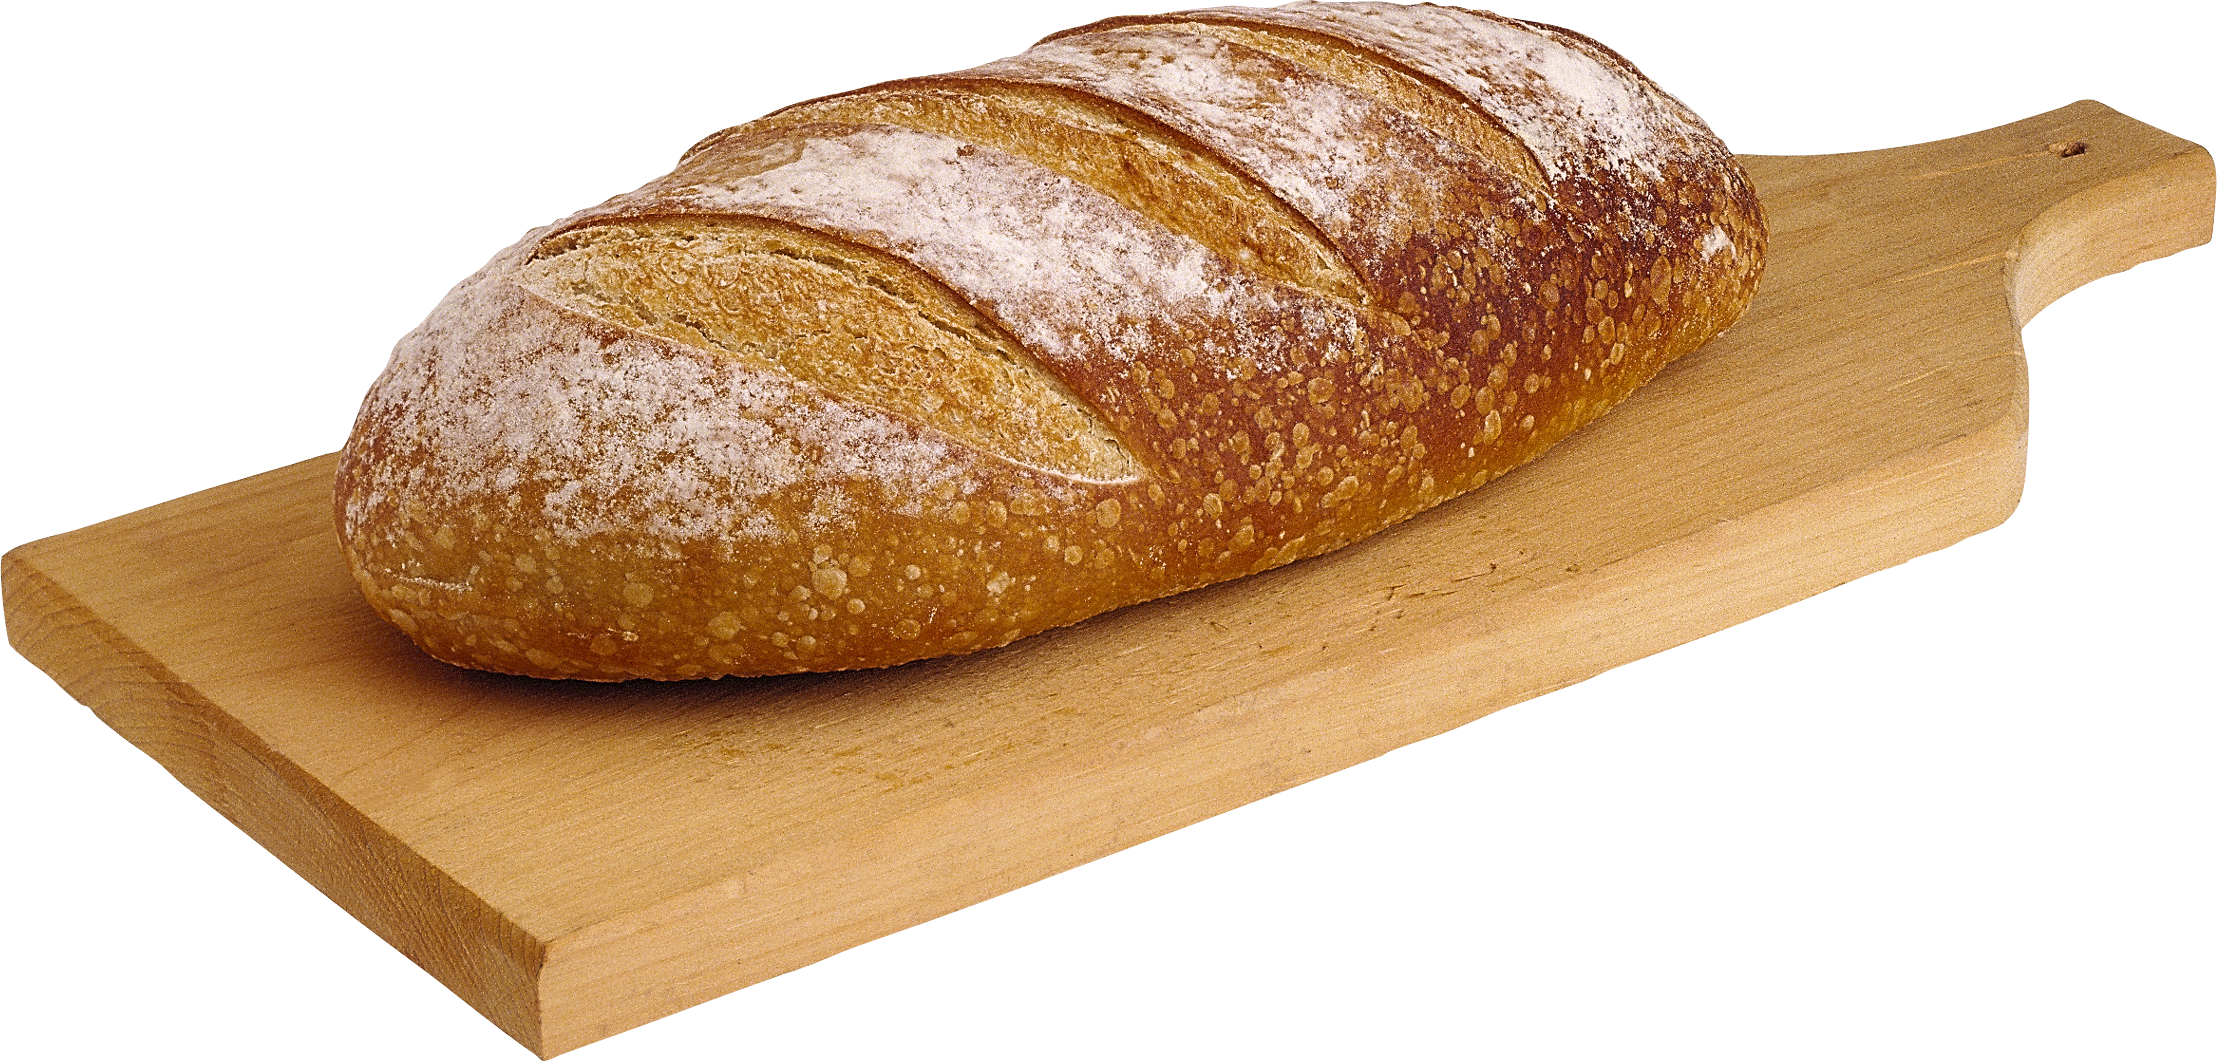 French Bread on a Cutting Board 127.65 Kb